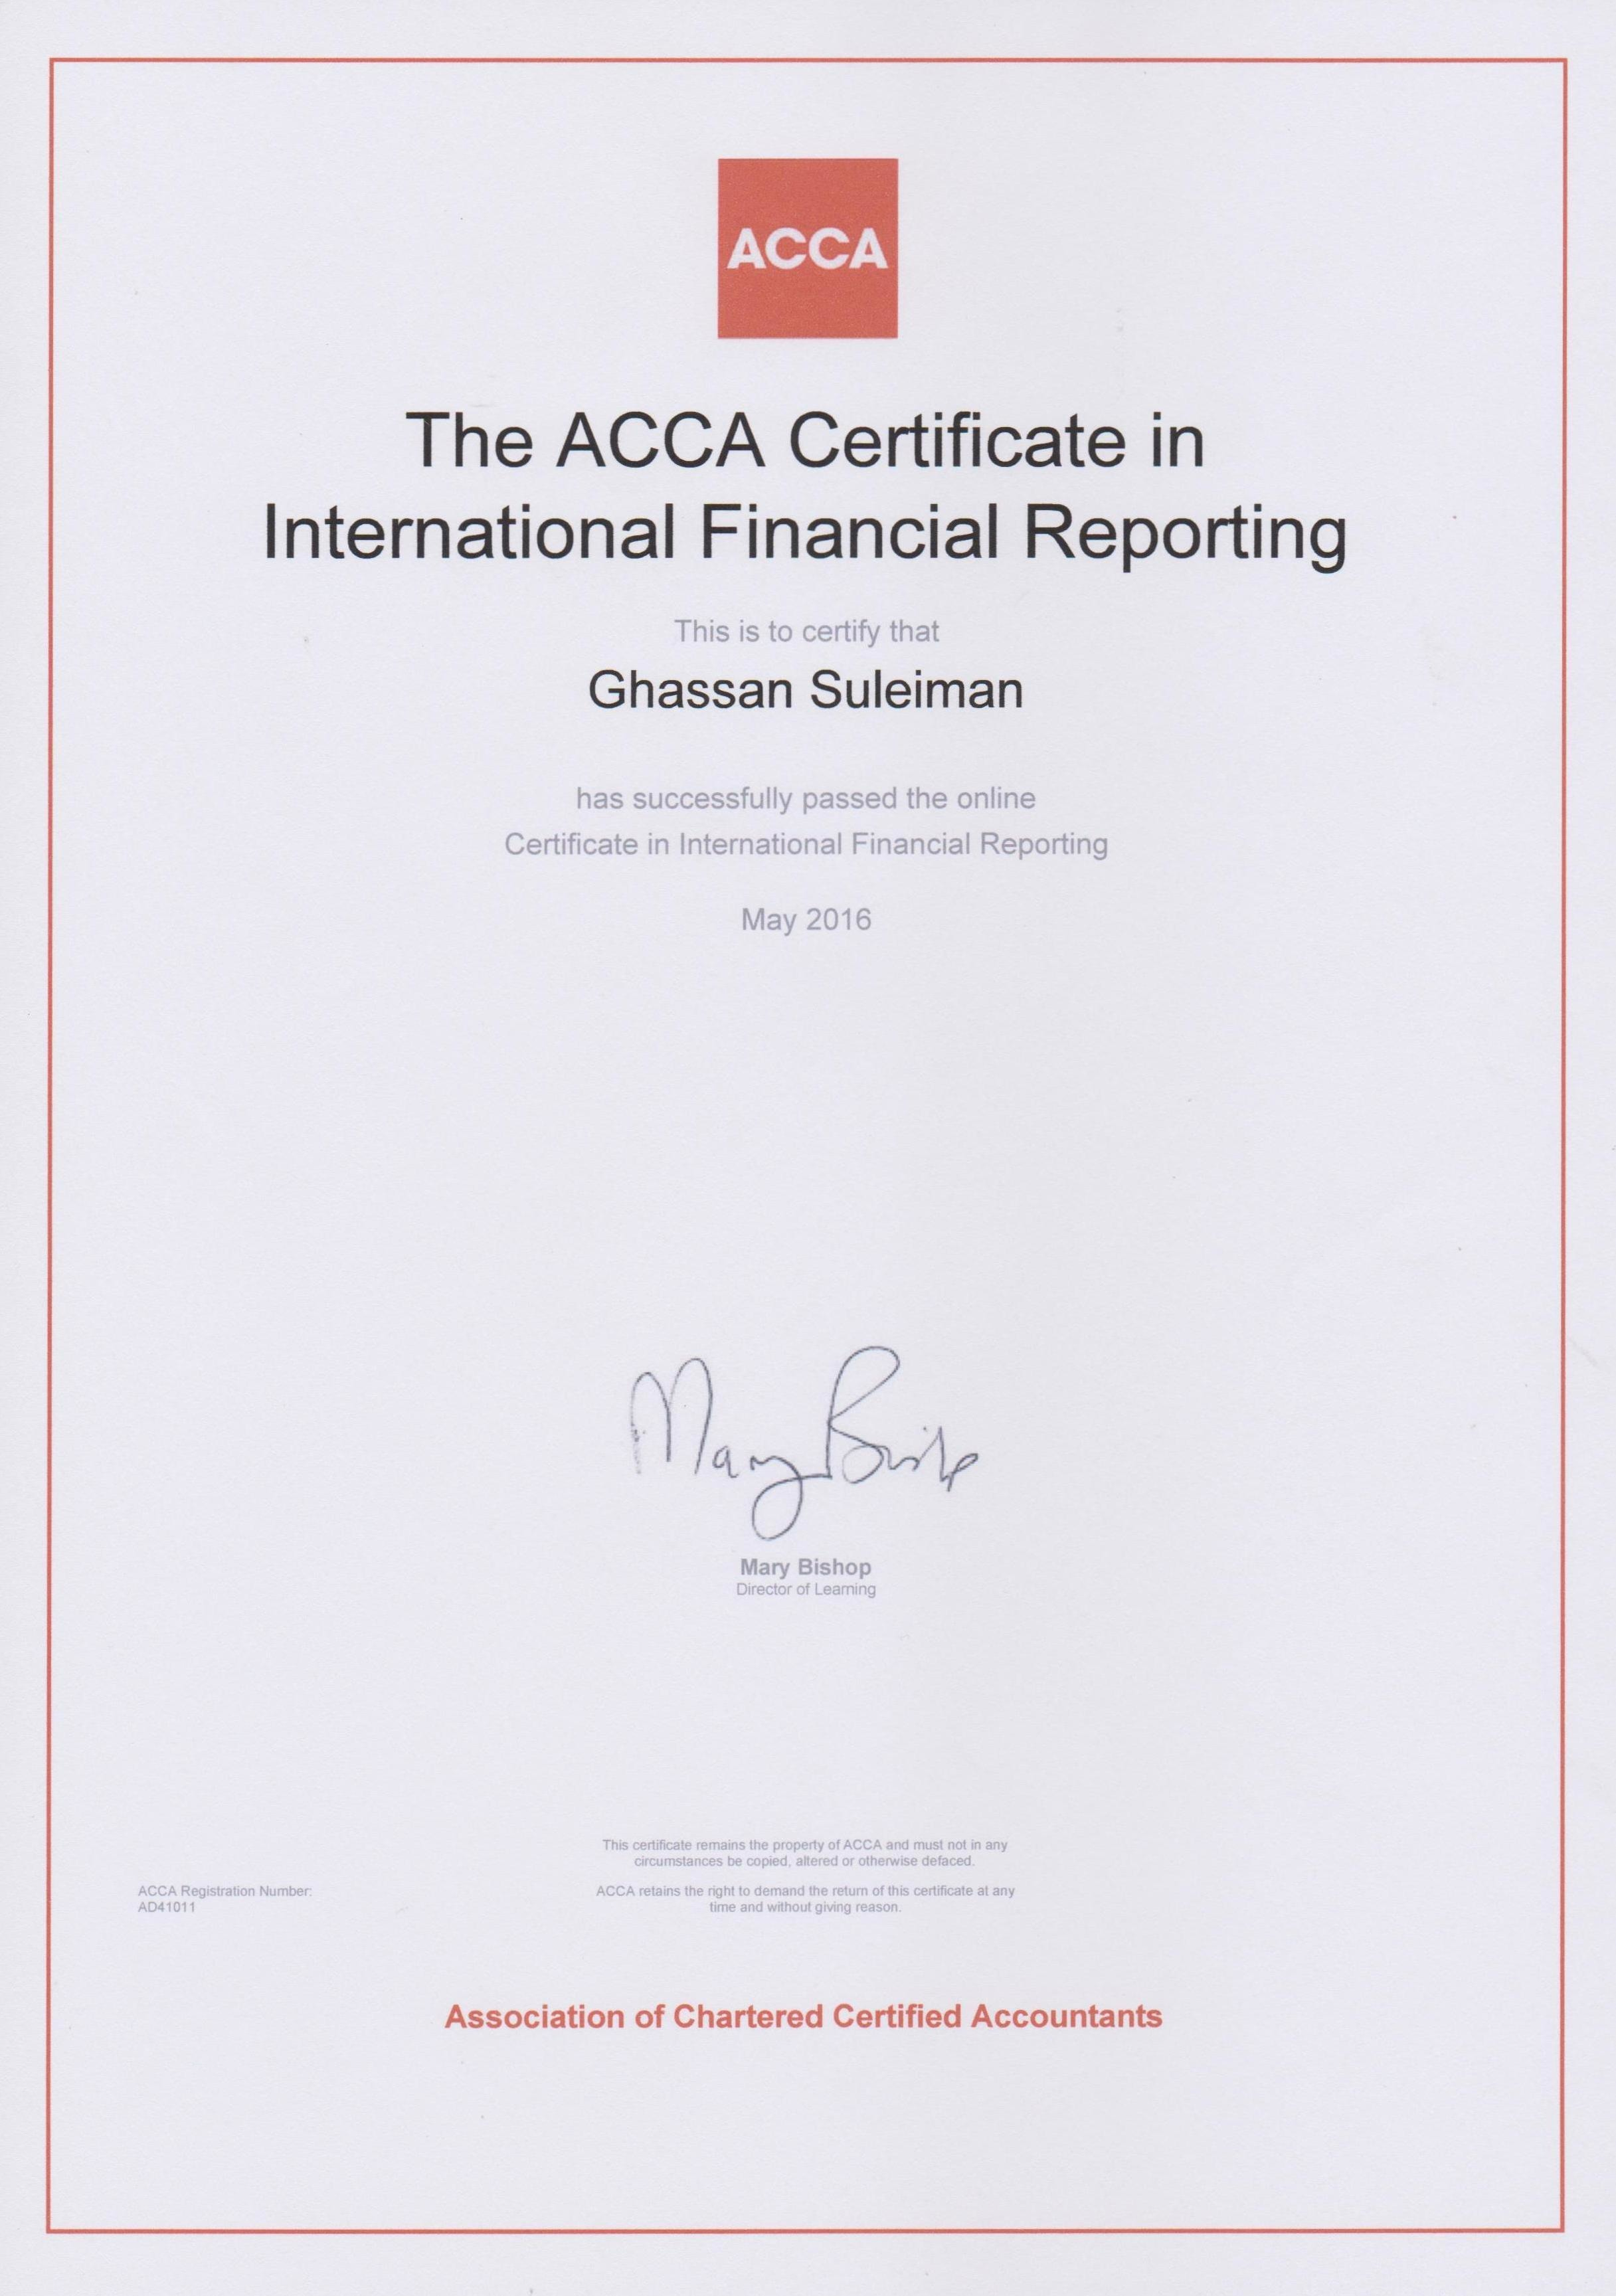 Ghassan suleiman cfc bayt certificate in international financial reporting certifr acca certificate 1betcityfo Gallery